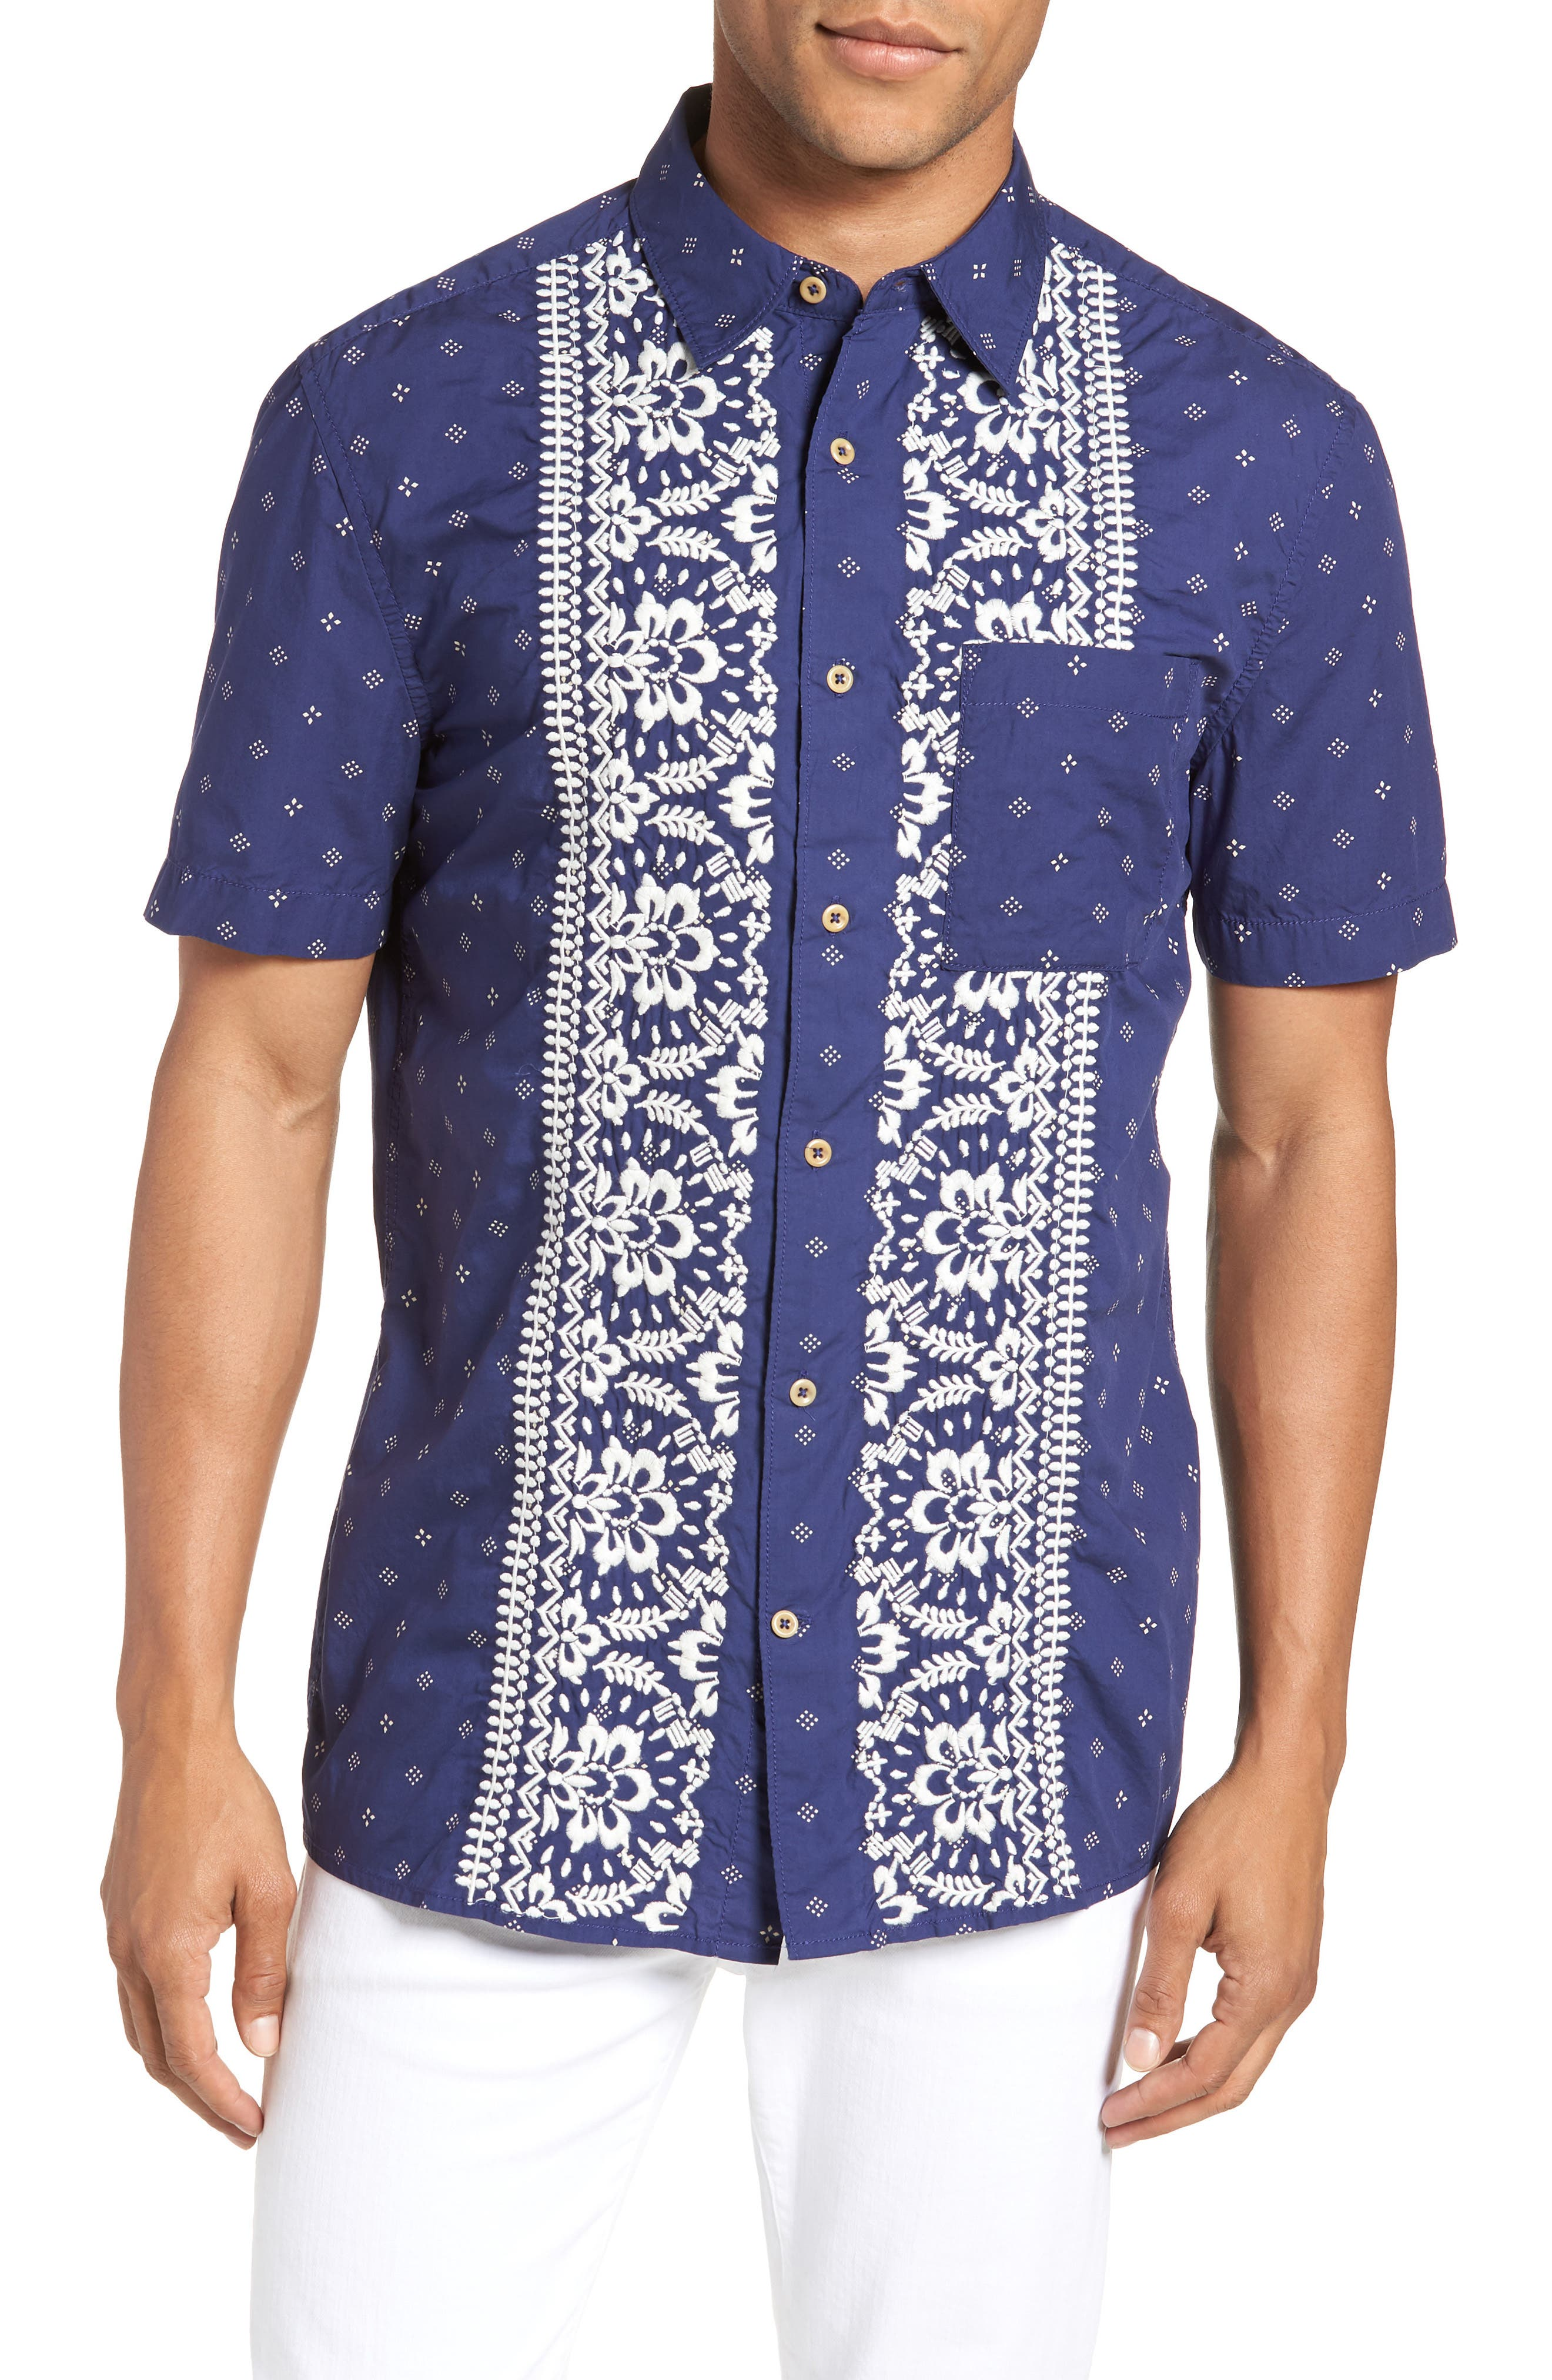 Iki Lawn Embroidered Shirt,                         Main,                         color, PATRIOT BLUE TURTLE DOVE